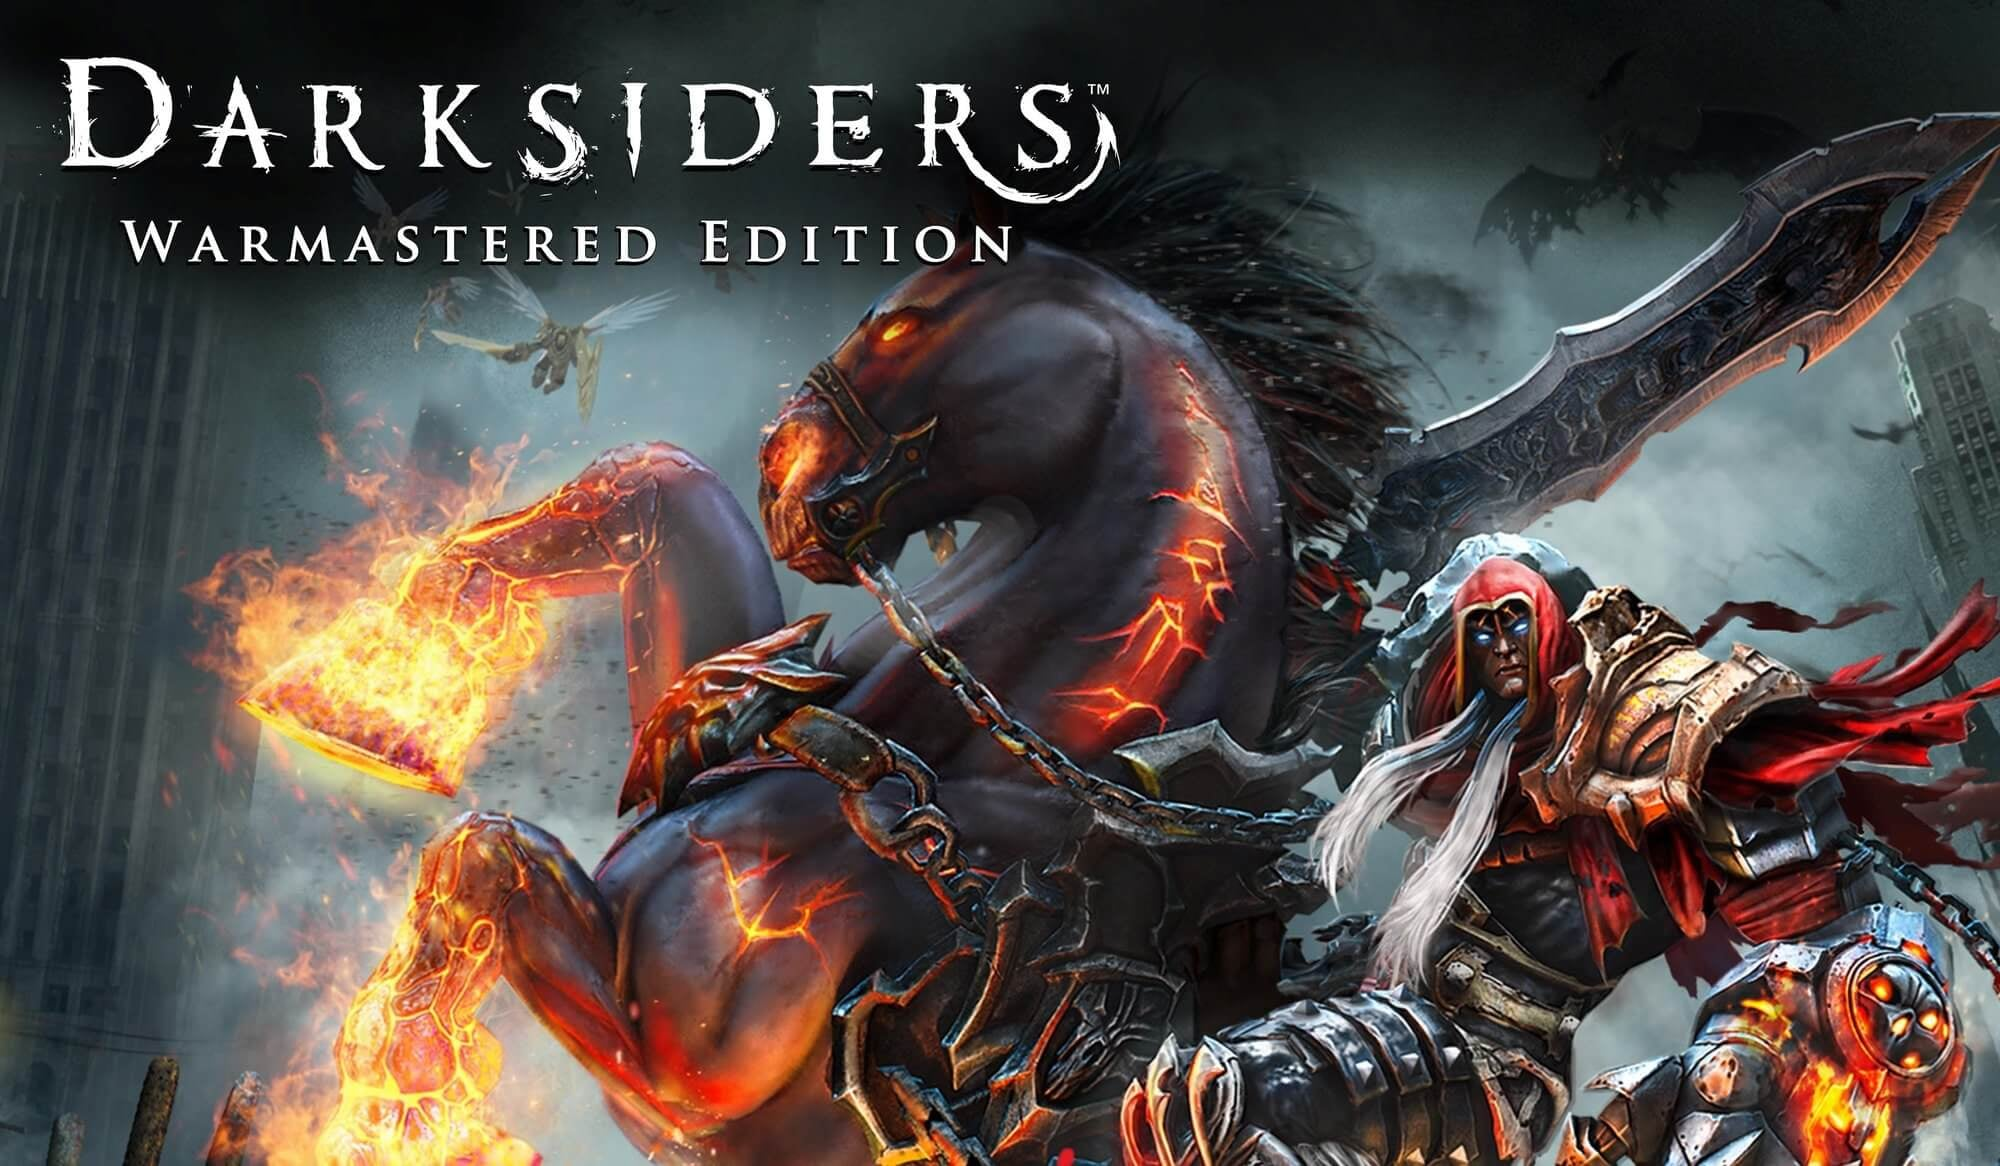 Darksiders Warmastered Edition Achievements Revealed